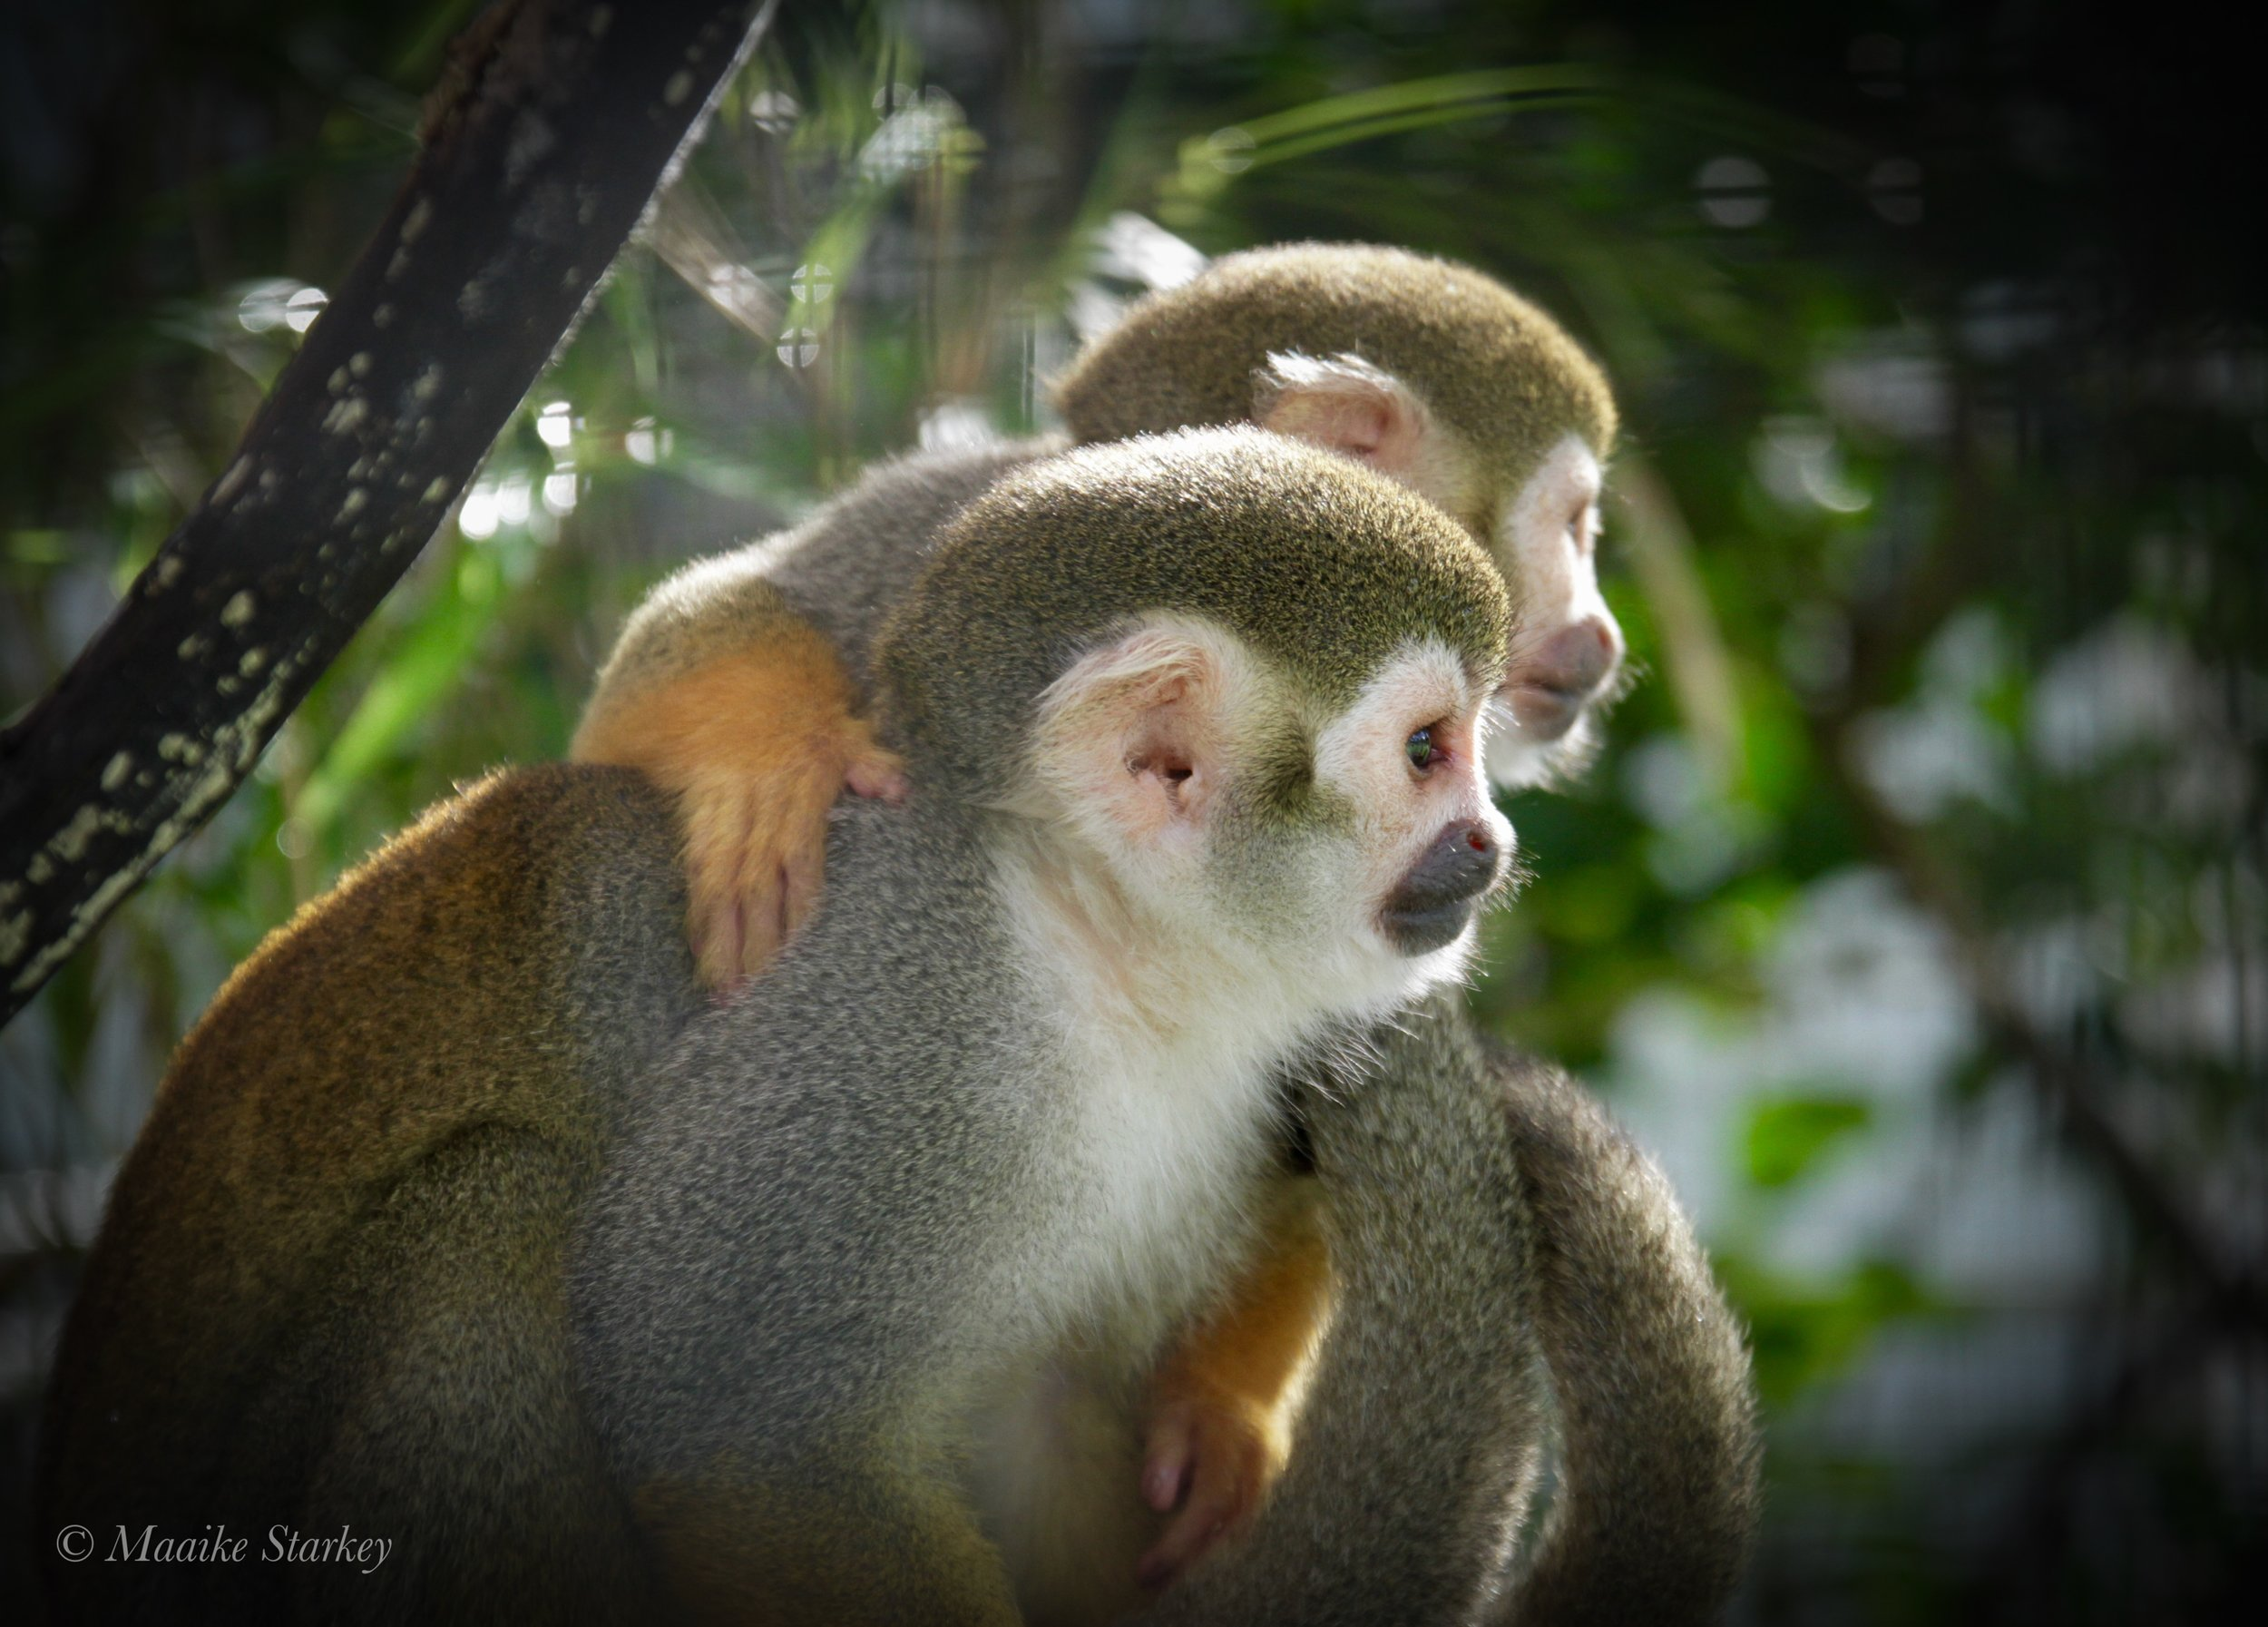 Successful Monkey Retirement - We advise research institutions and primate sanctuaries during monkey retirement negotiations to facilitate successful outcomes for all involved, including the monkeys.